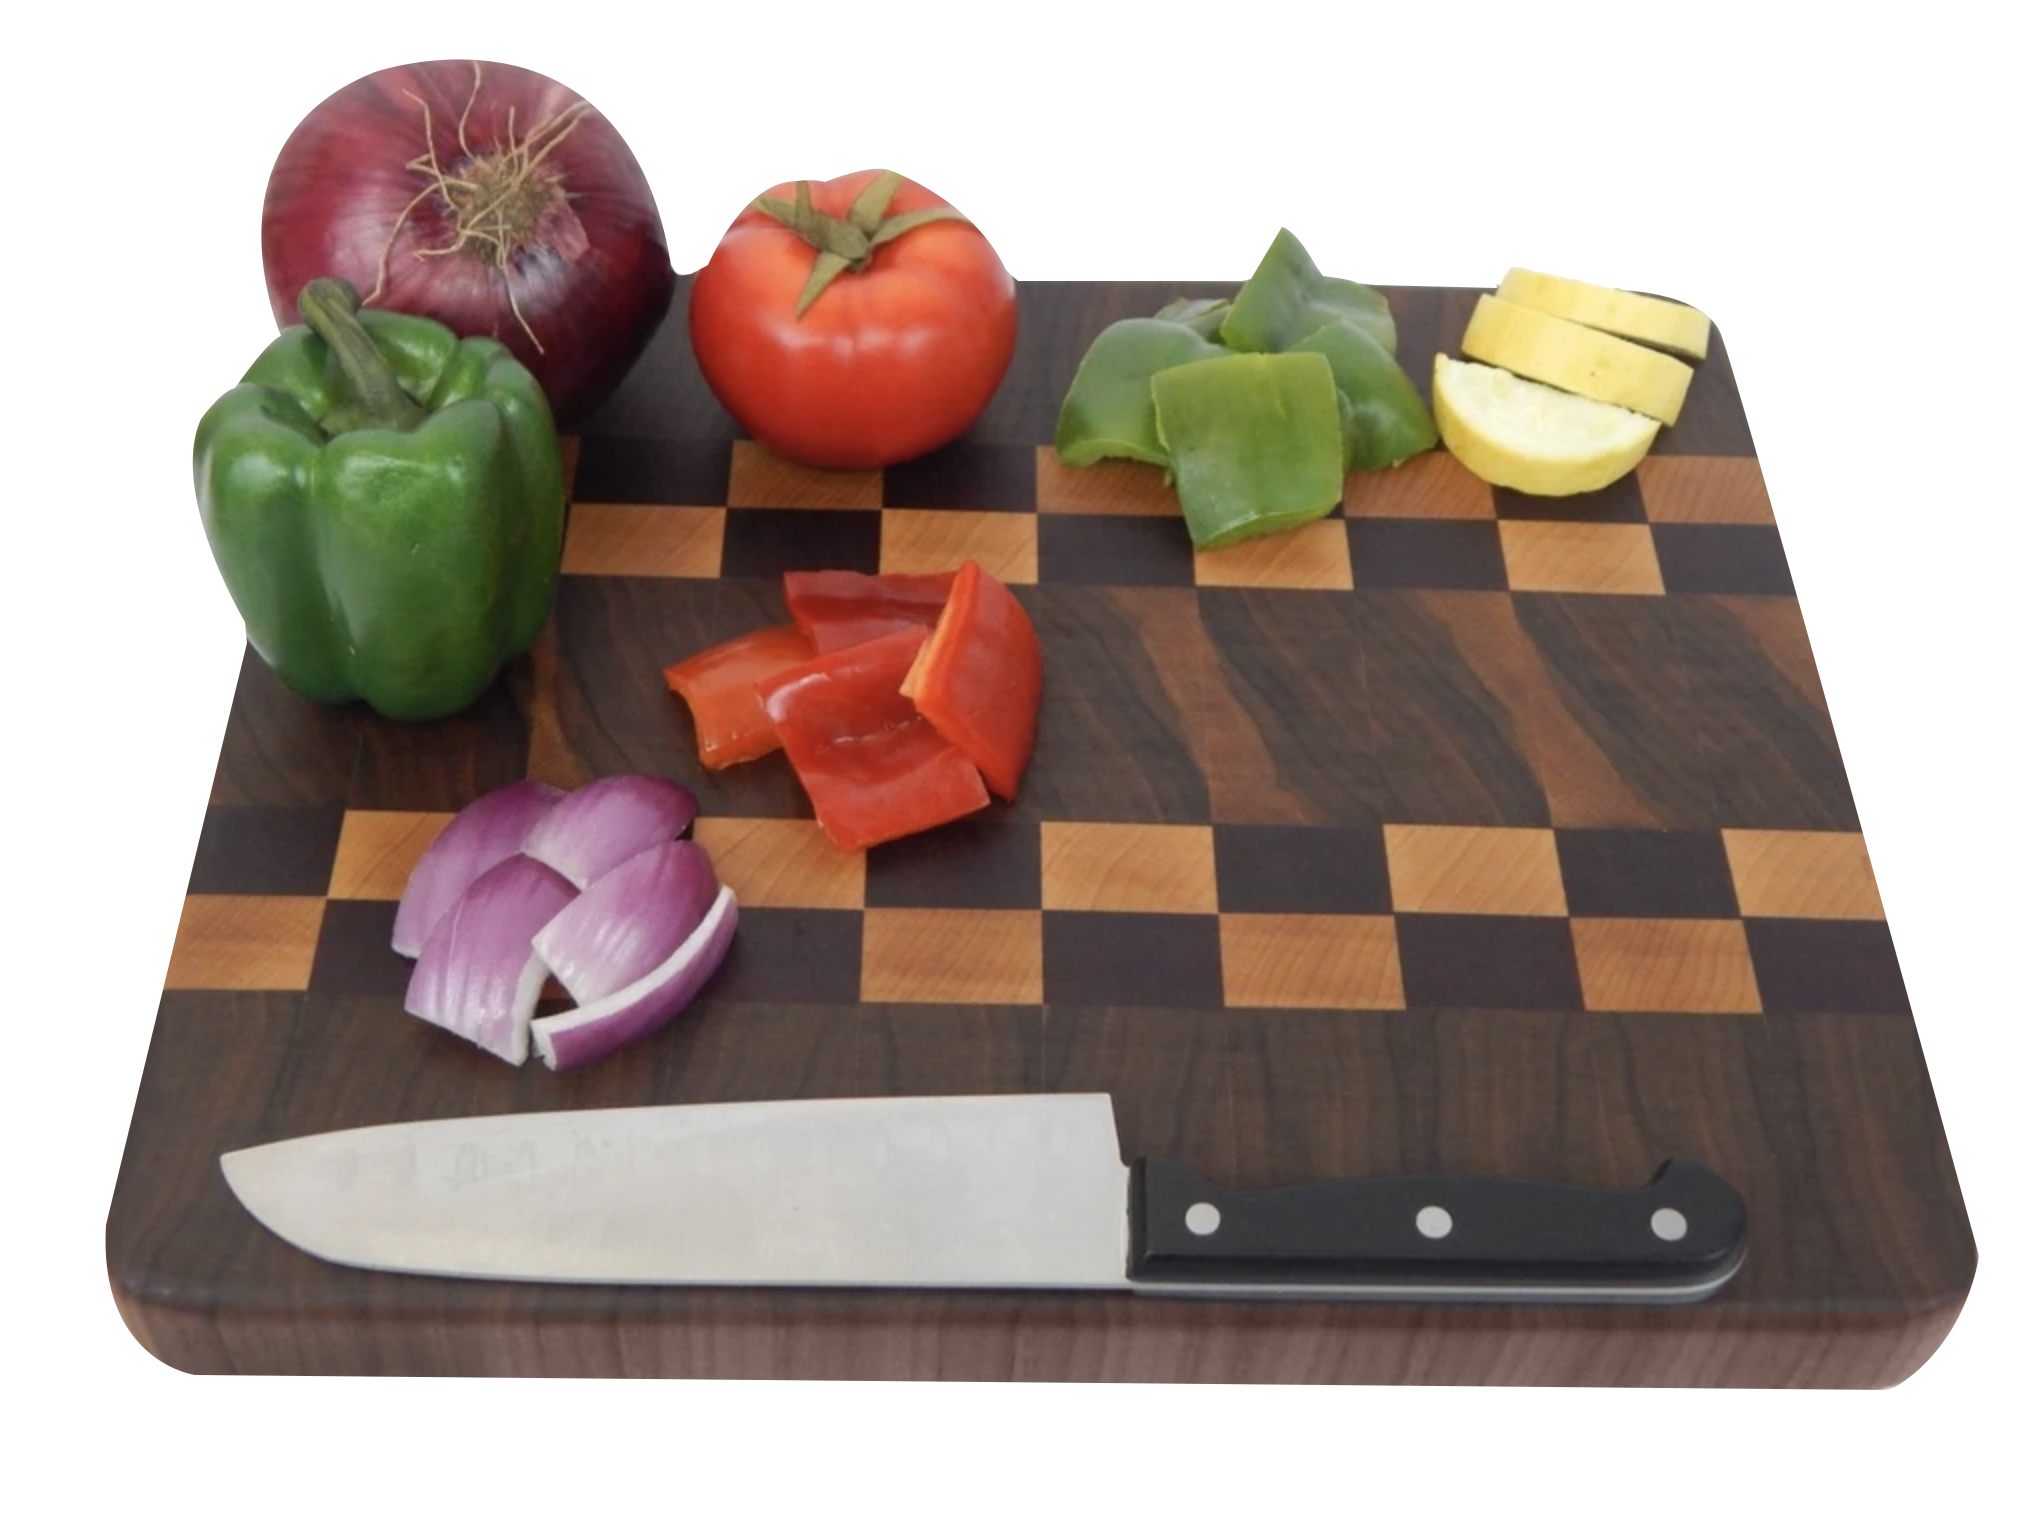 about example board with veggies